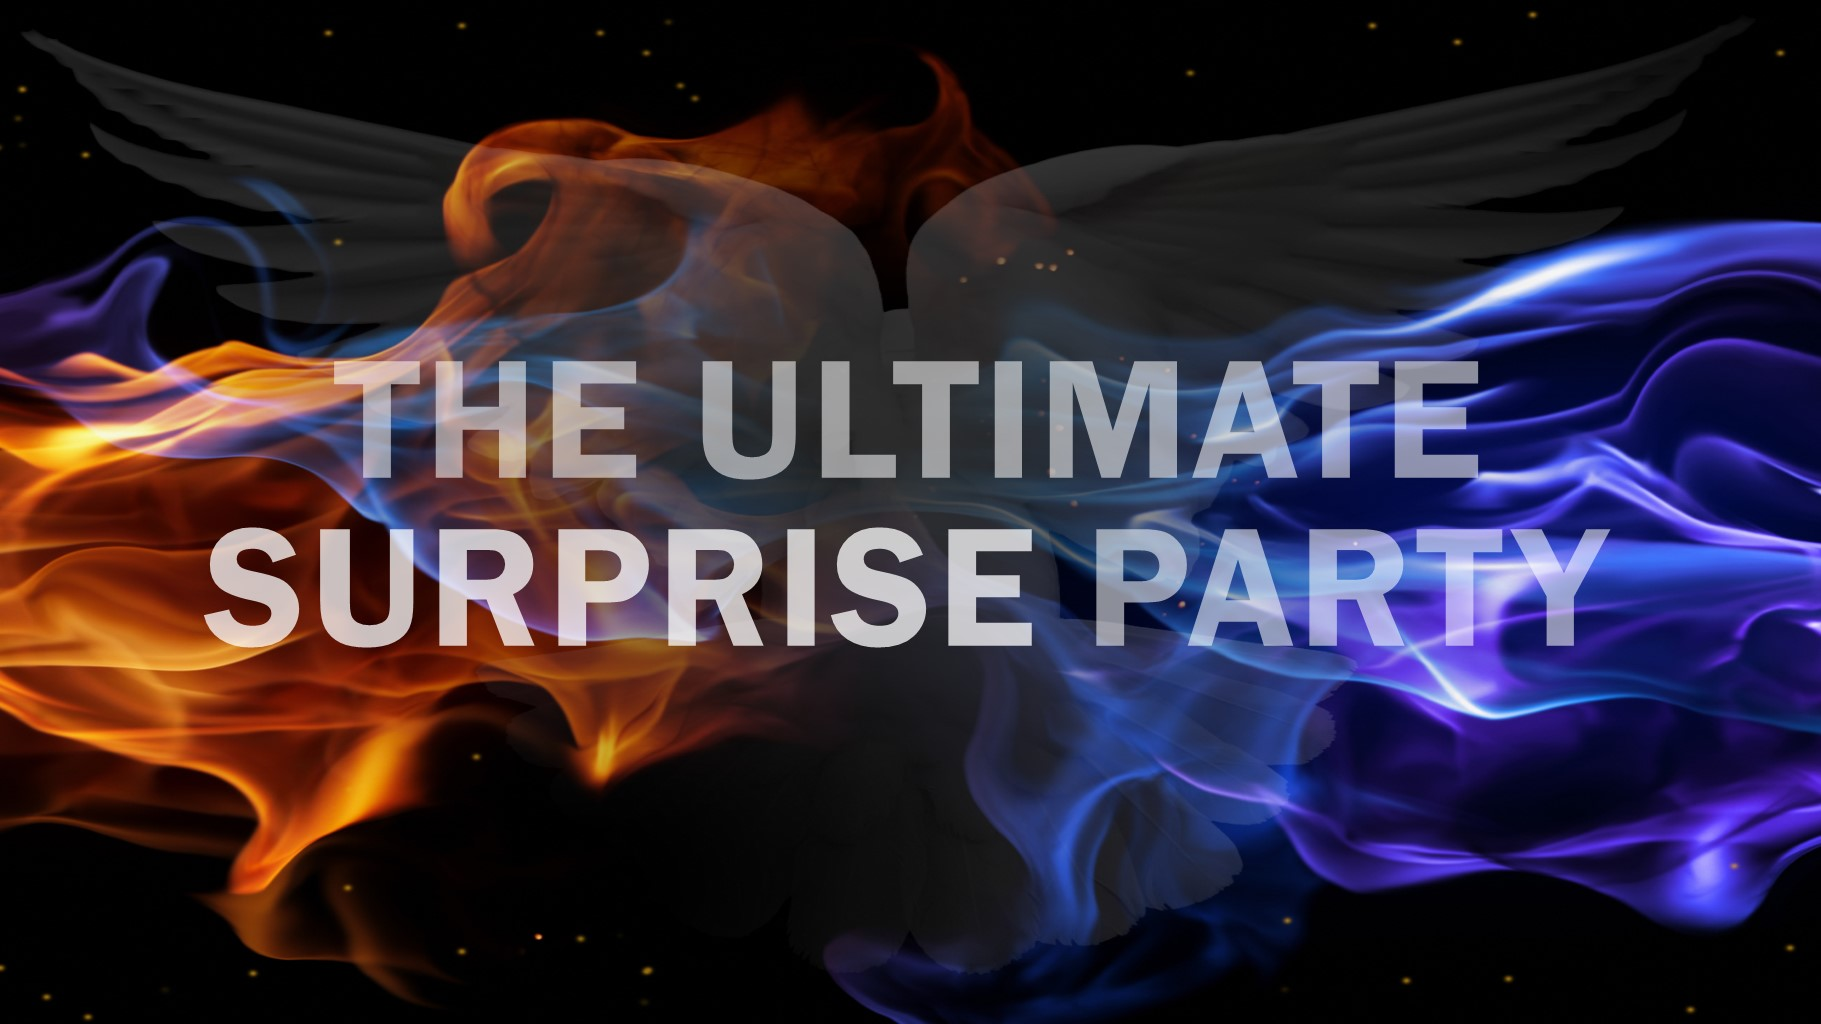 The Ultimate Surprise Party